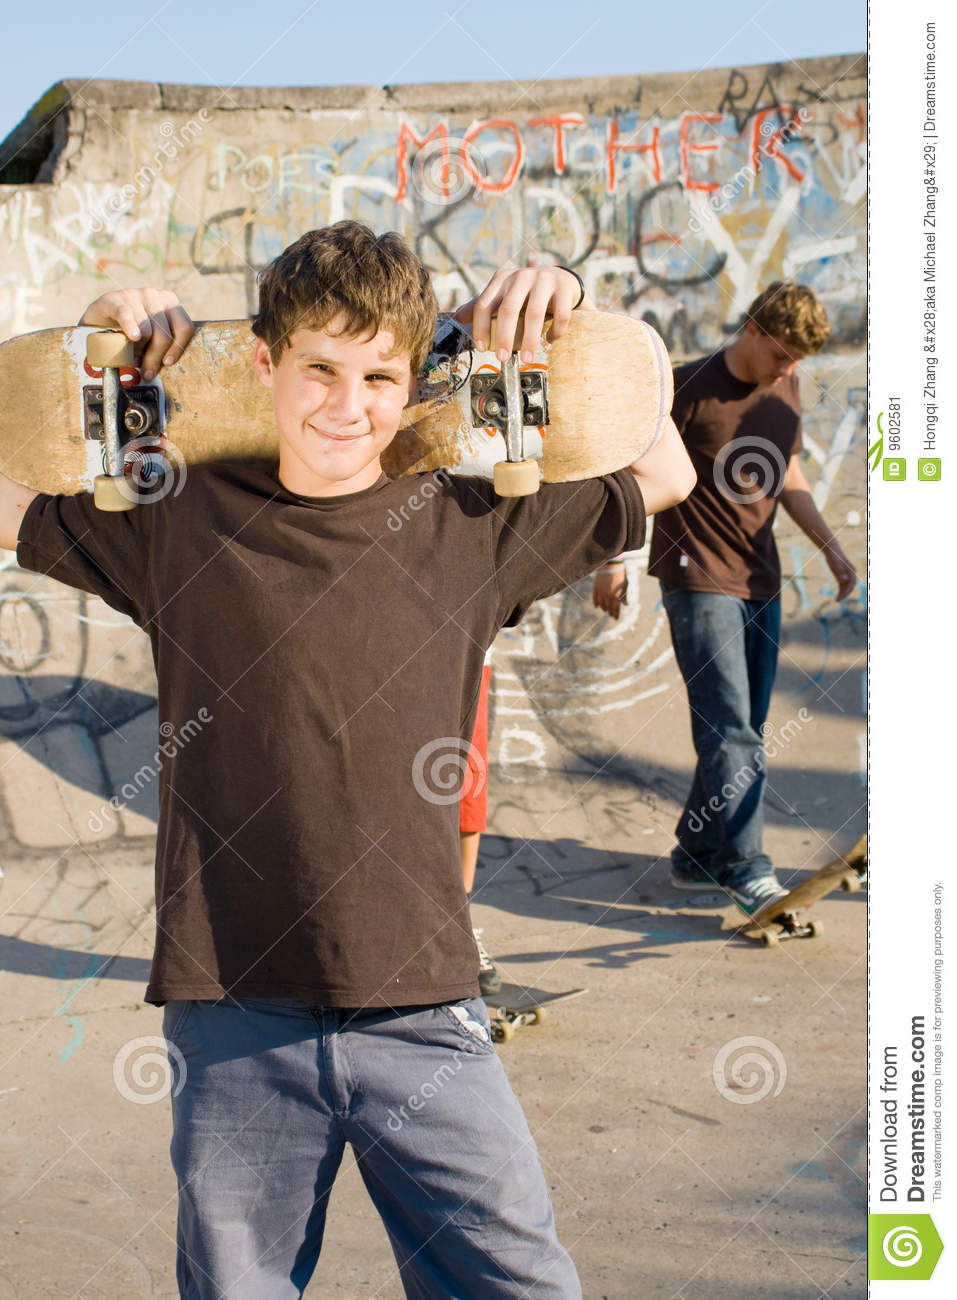 Images Of Boys Painted Bedrooms: Skateboard Boys Stock Image